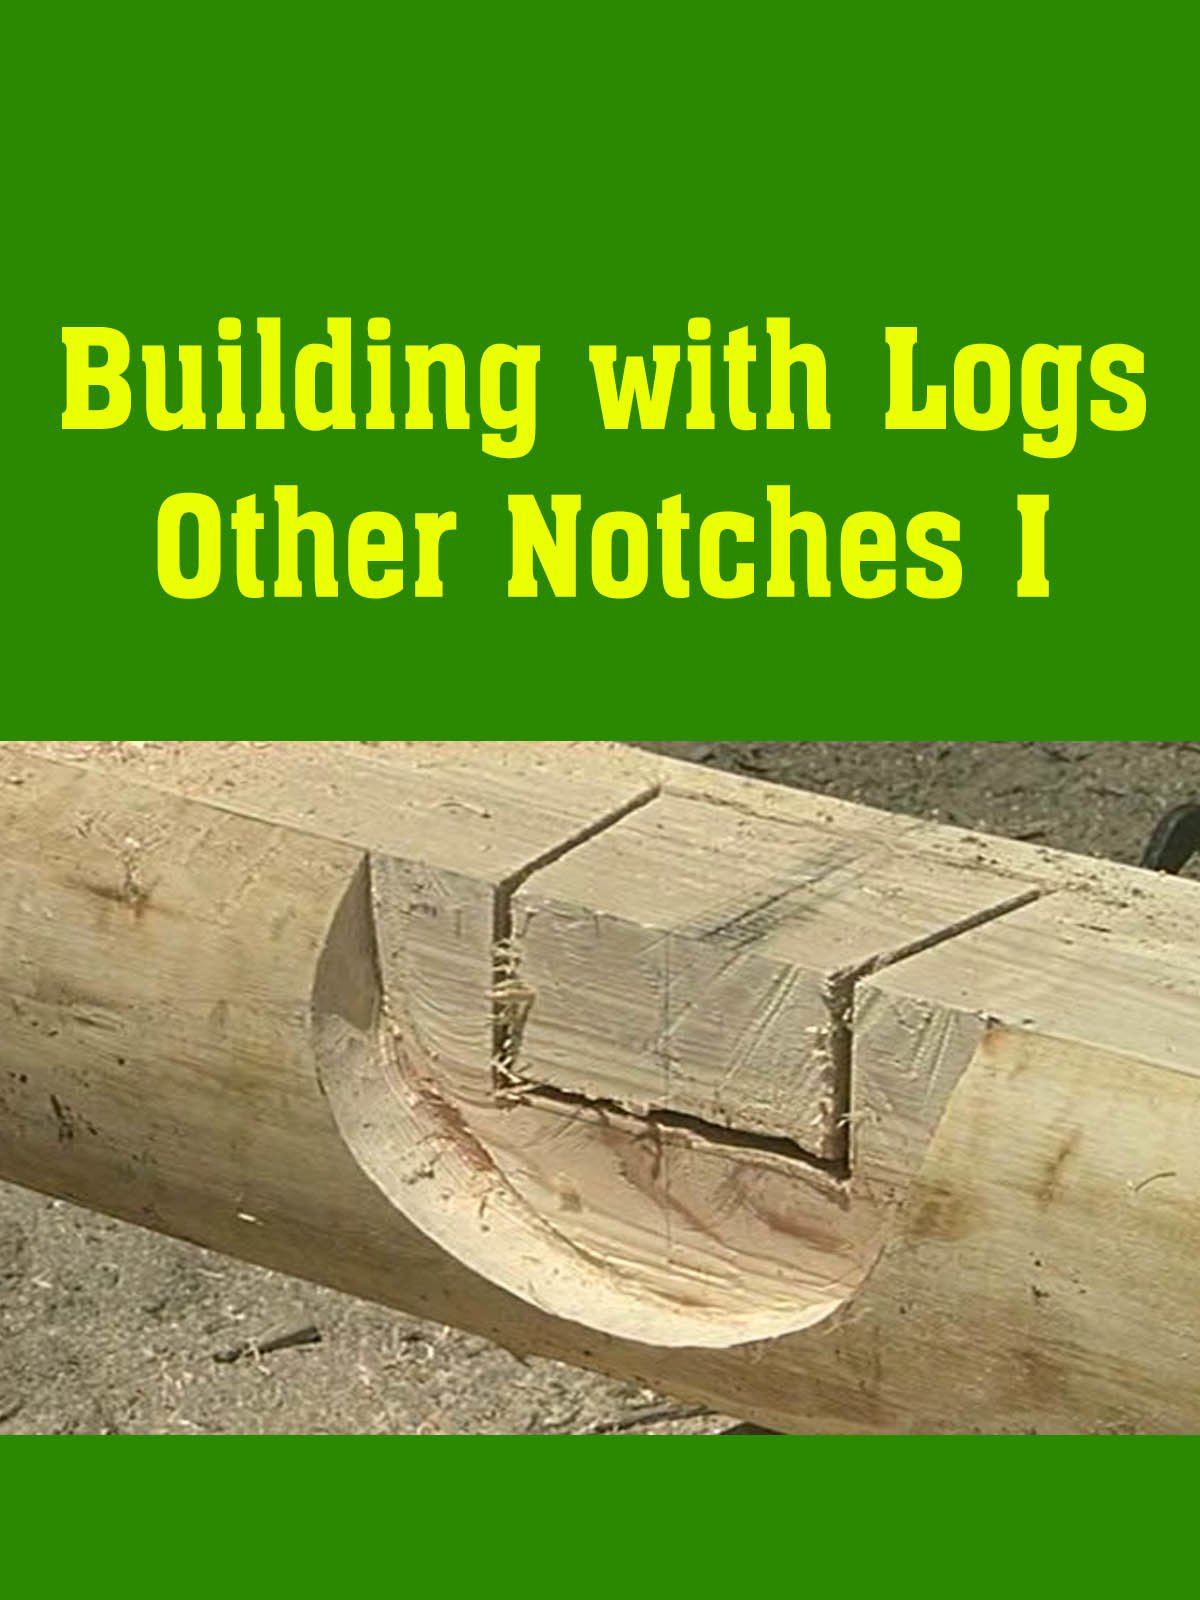 Building with Logs Other Notches I